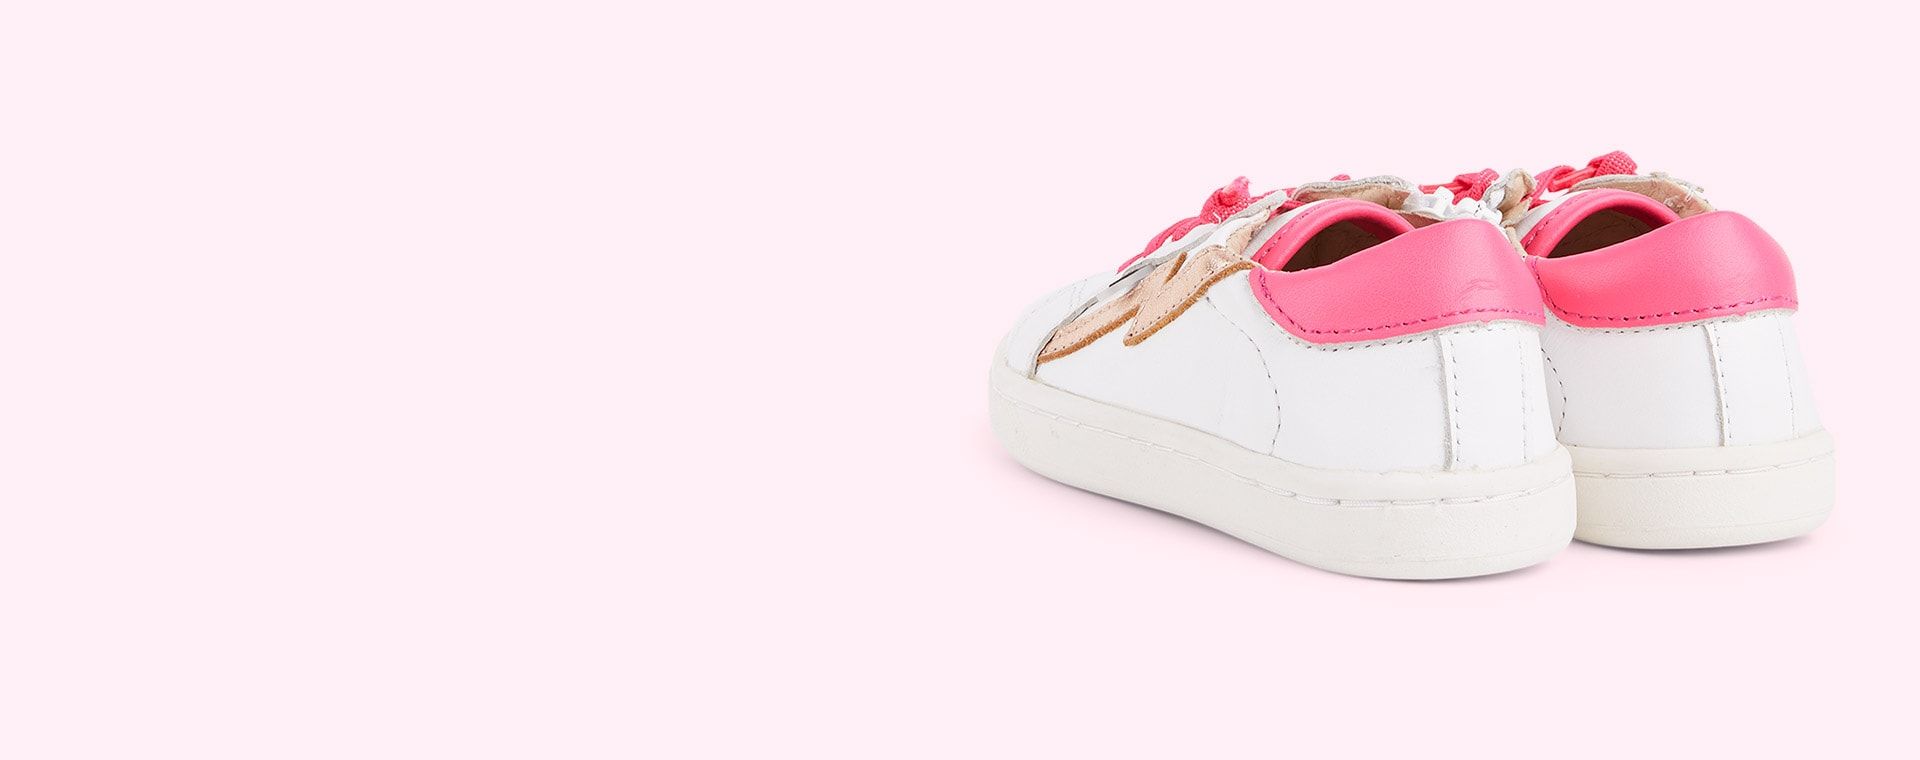 Snow / Neon Pink / Copper old soles Bolty Runner